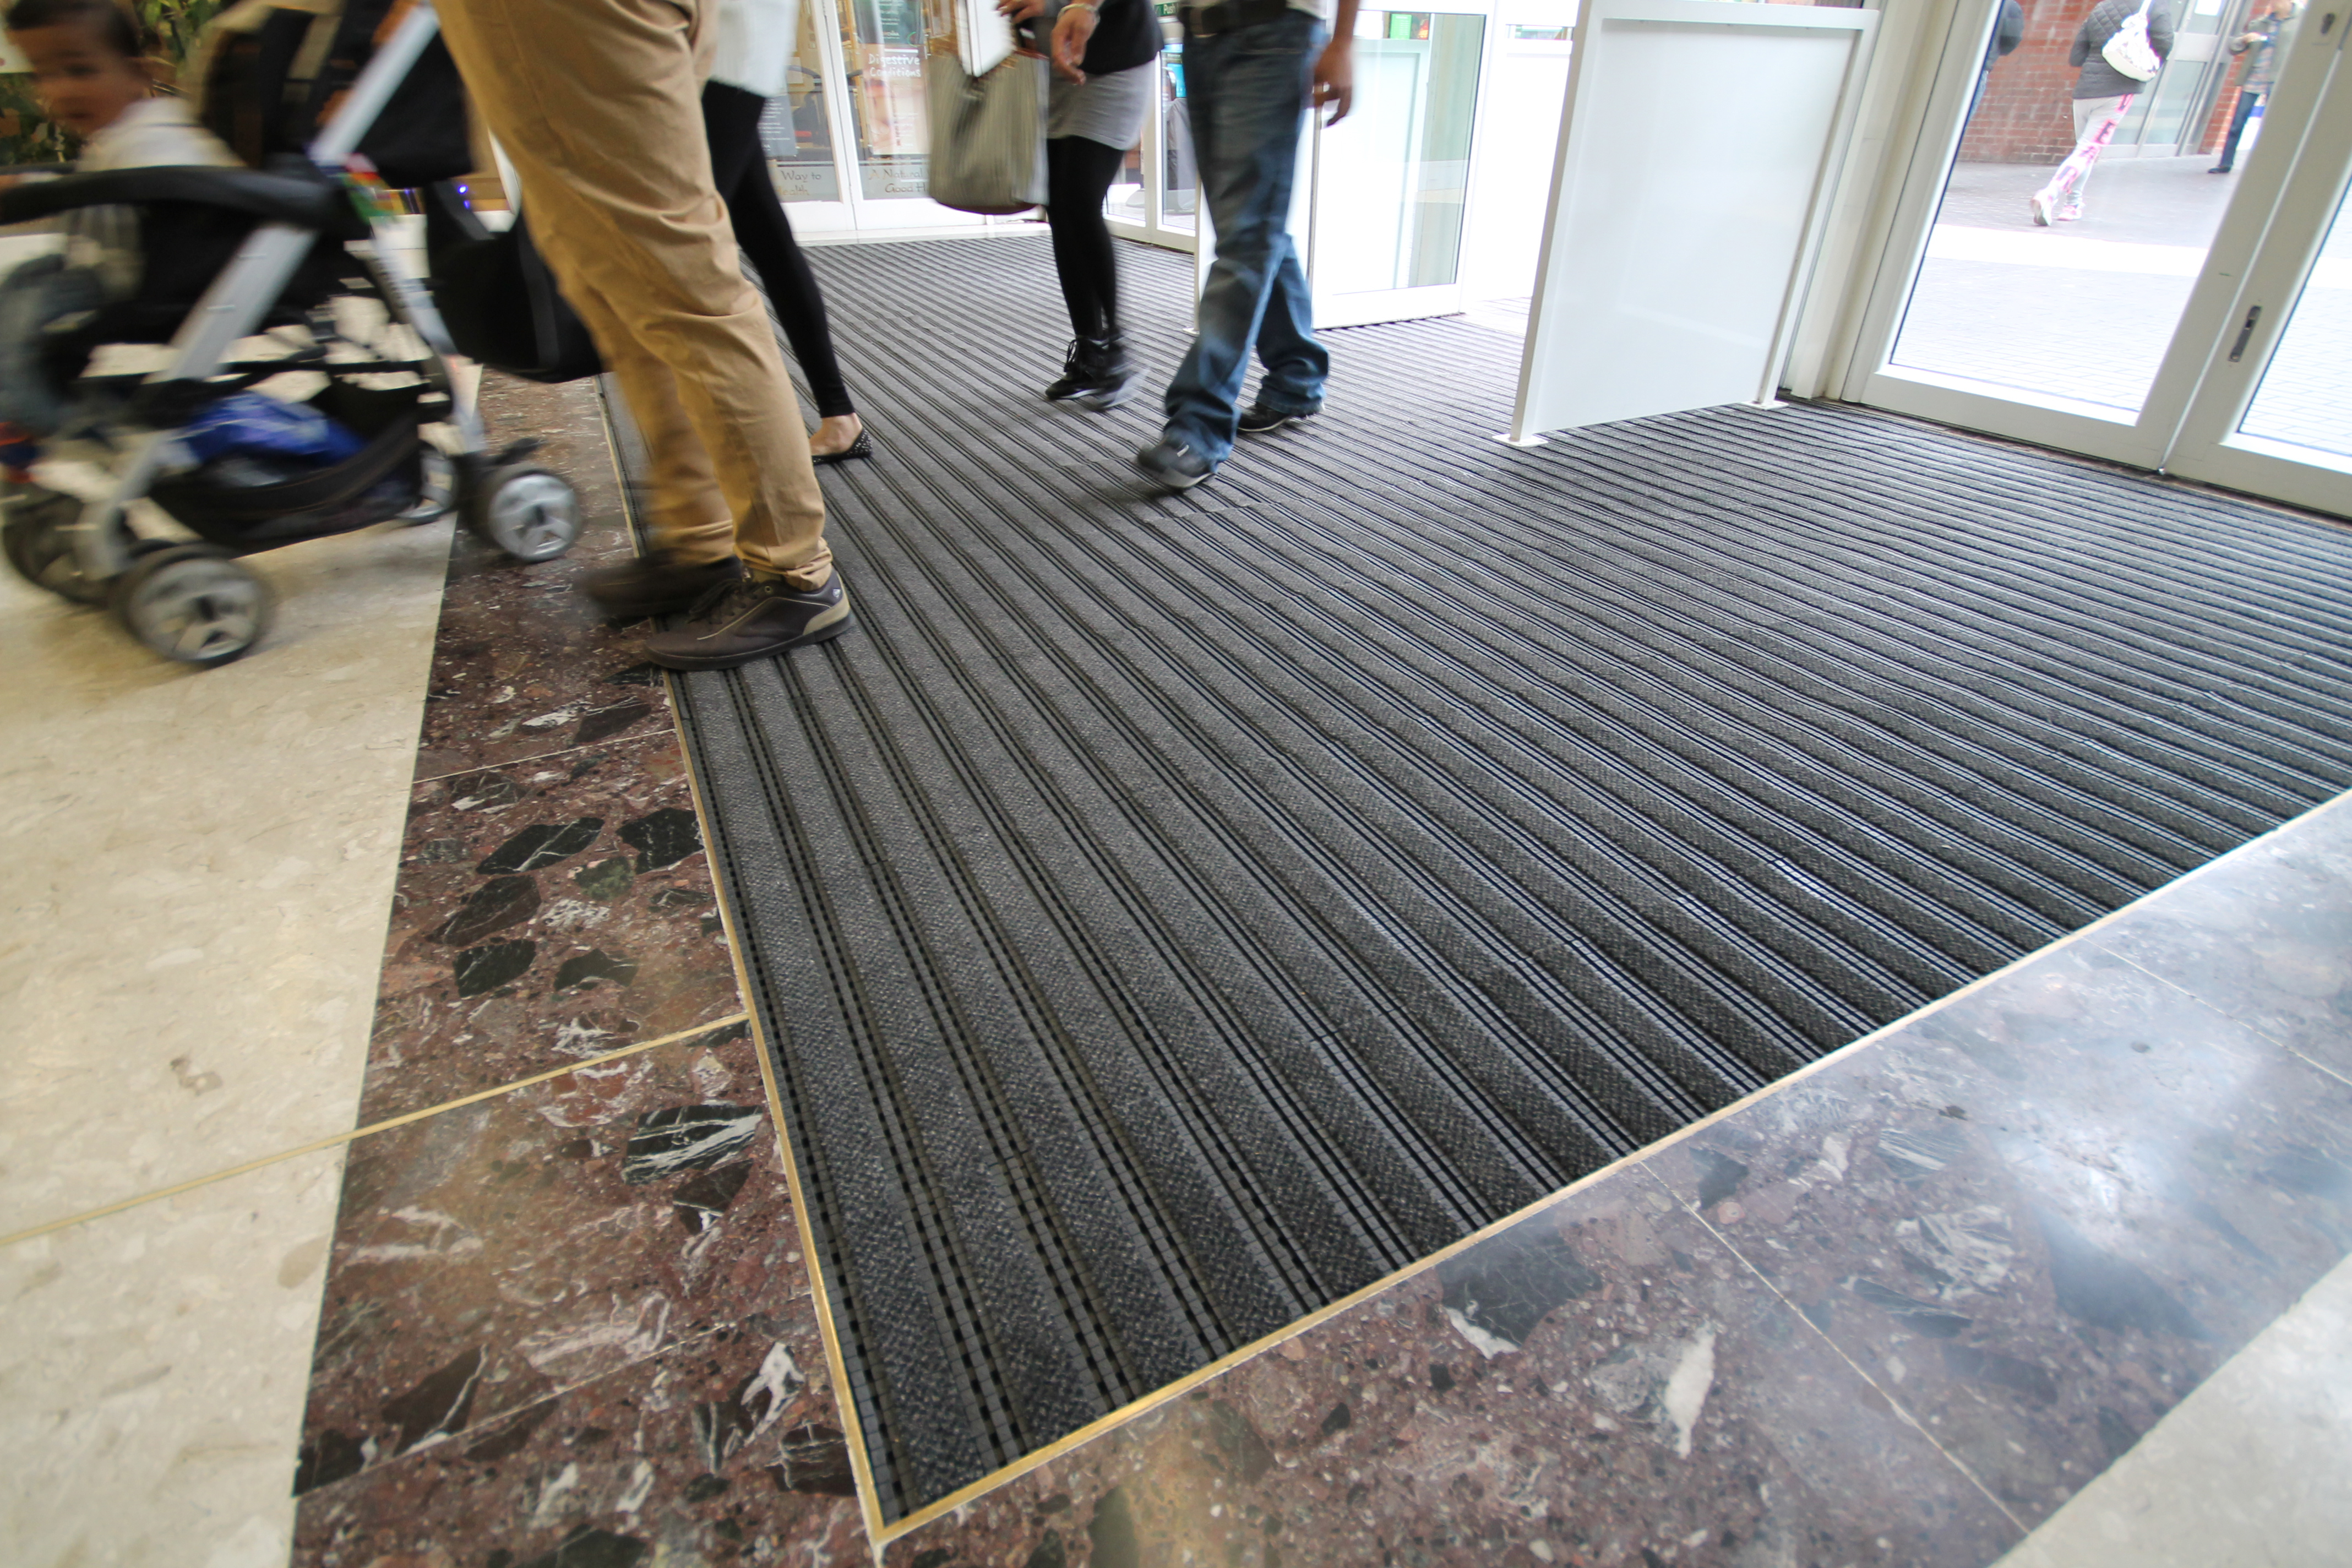 matco save mats this made enhance footprints by company custom matting logo dirty premier your floors from entrance inserting moisture a to application systems absorbing track mat whilst